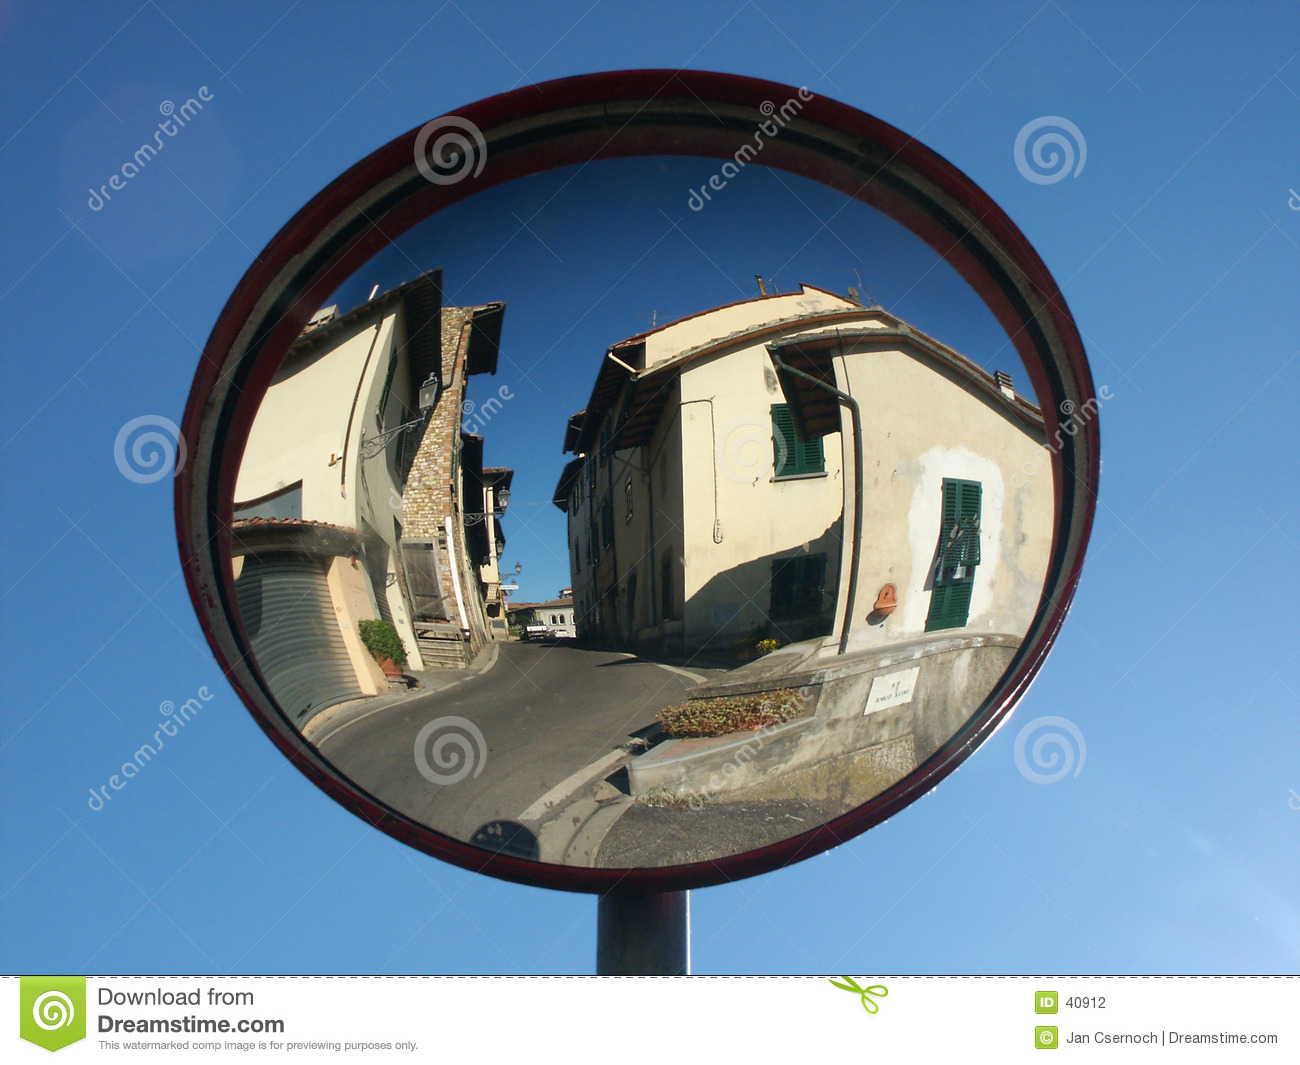 Traffic mirror reflecting small town